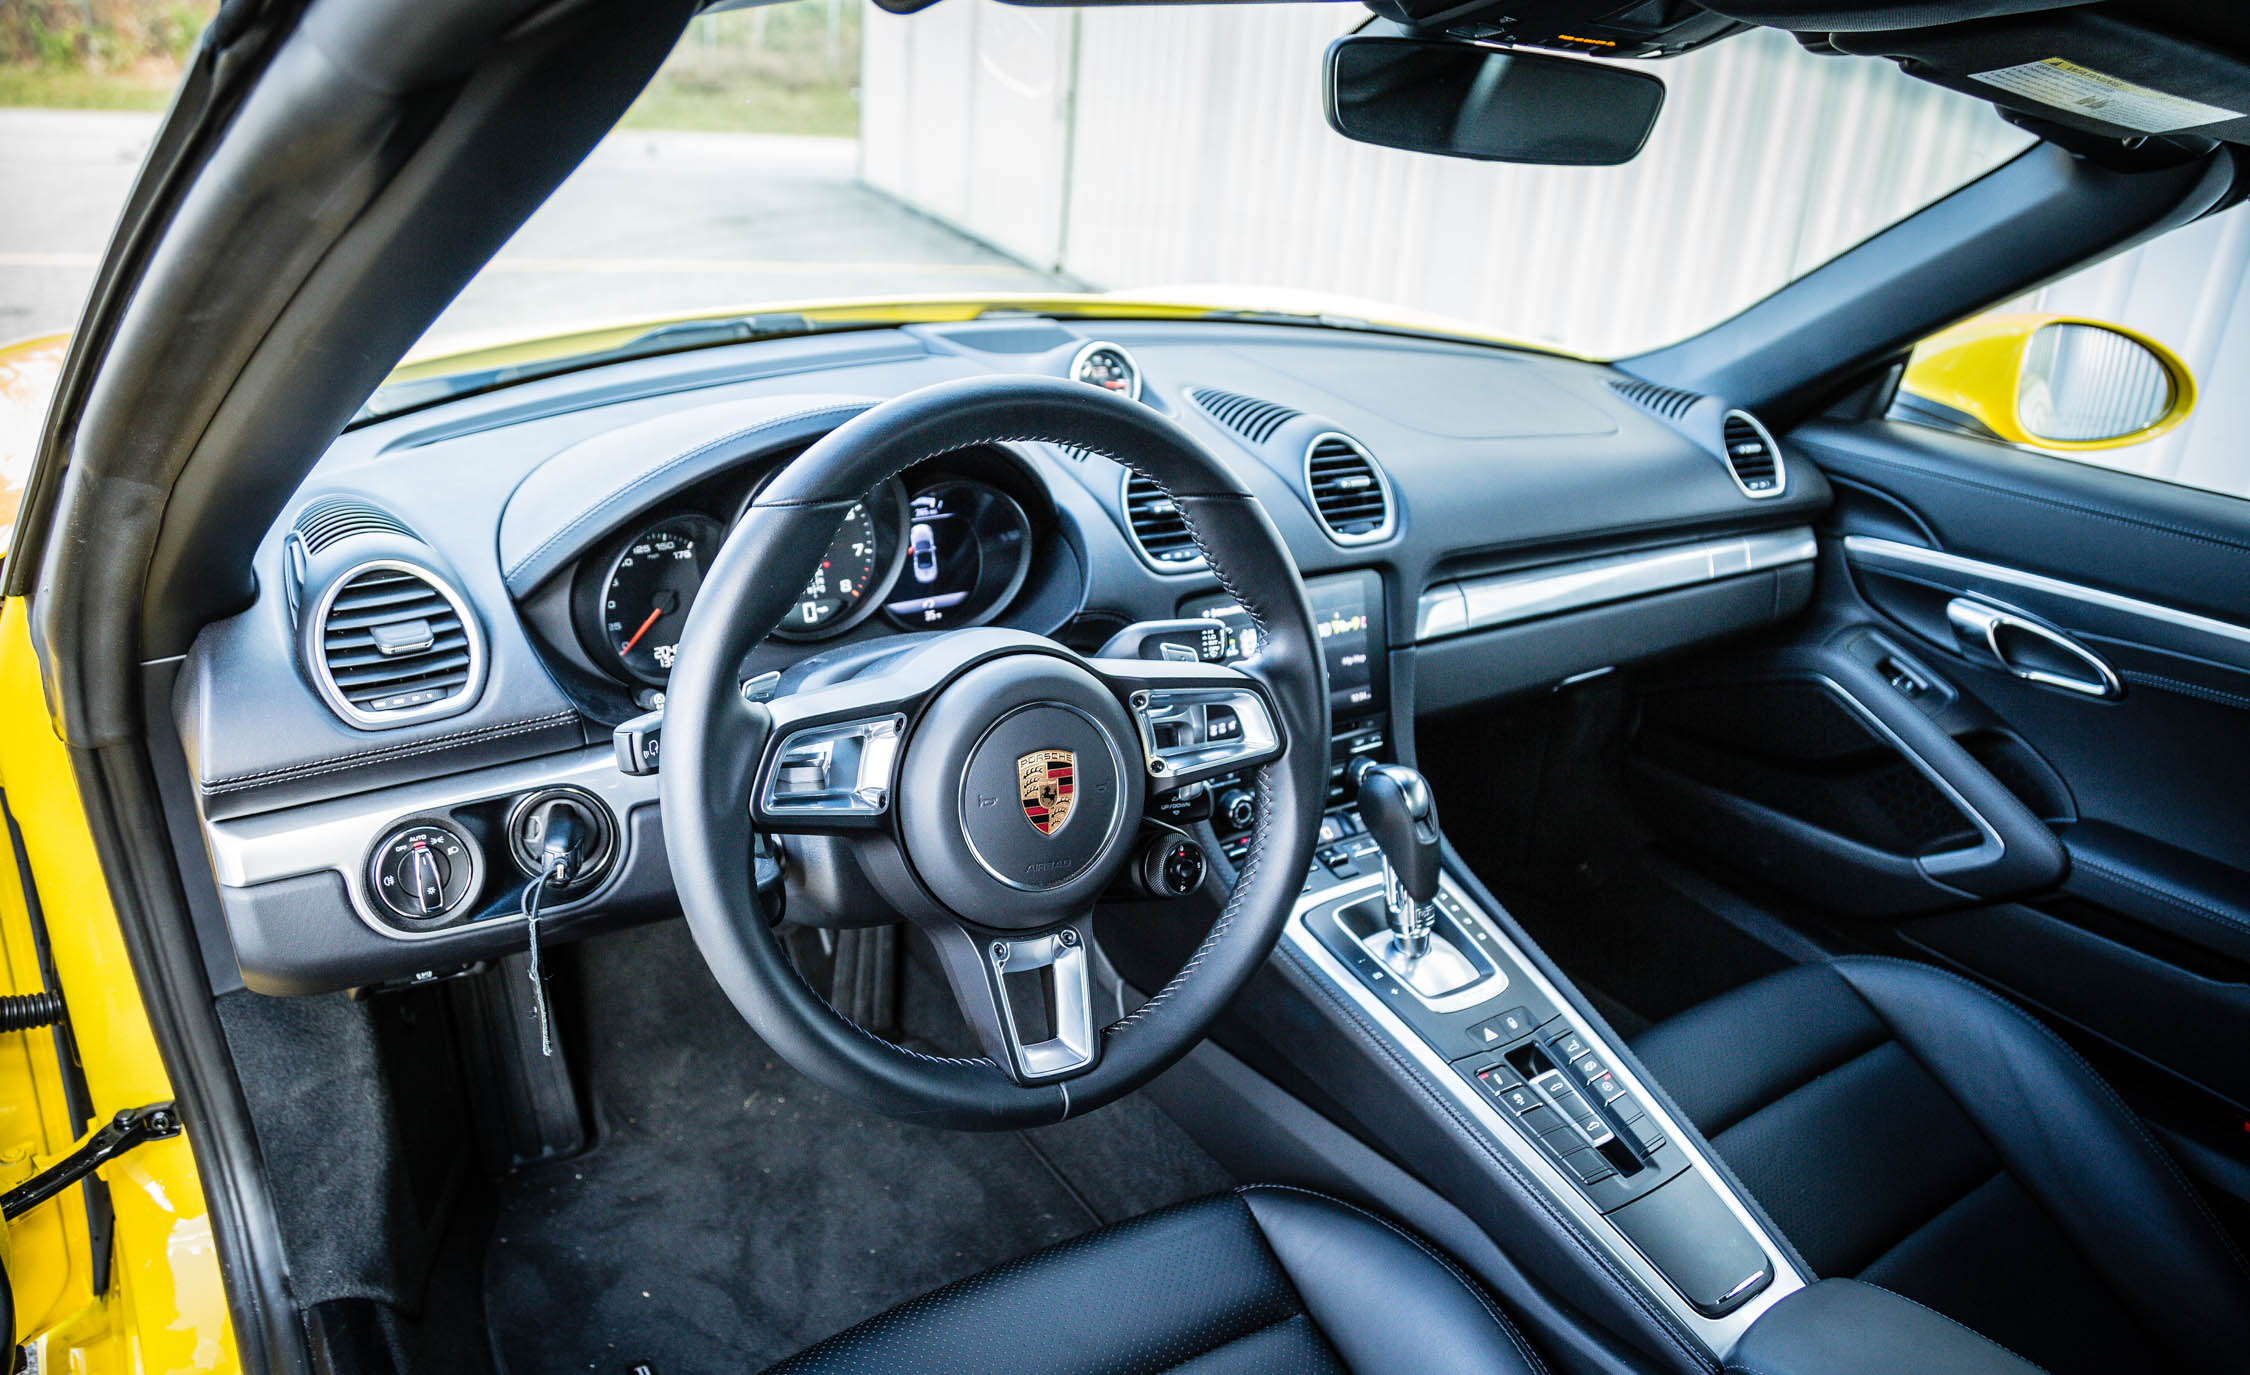 2017 Porsche 718 Boxster Interior Cockpit Steering And Dash (View 9 of 71)